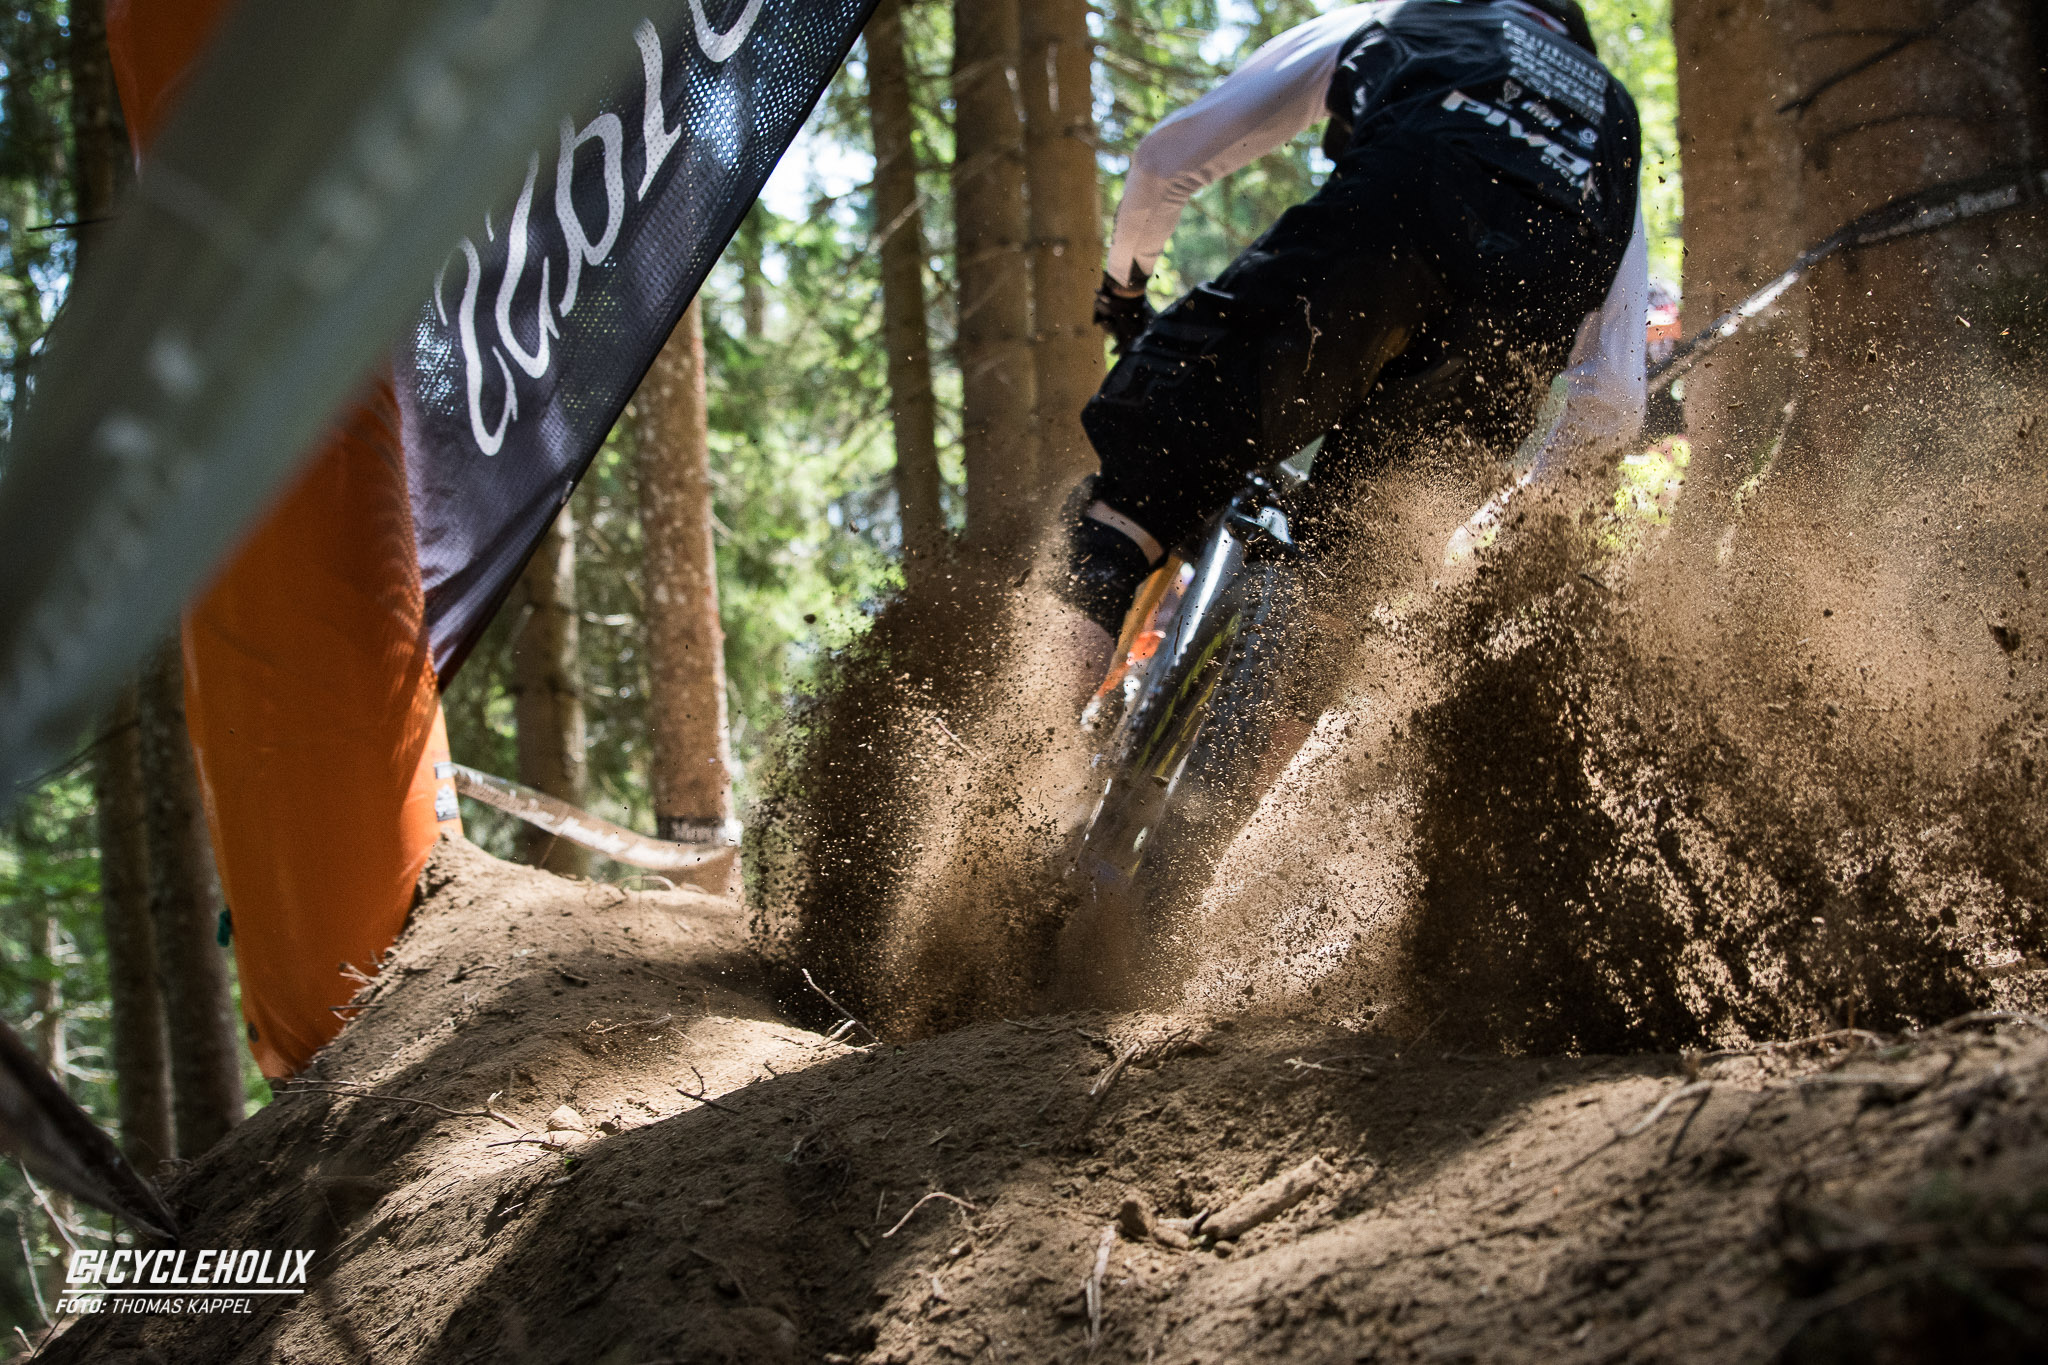 2019 Downhill Worldcup Leogang Finale Action 18 Cycleholix